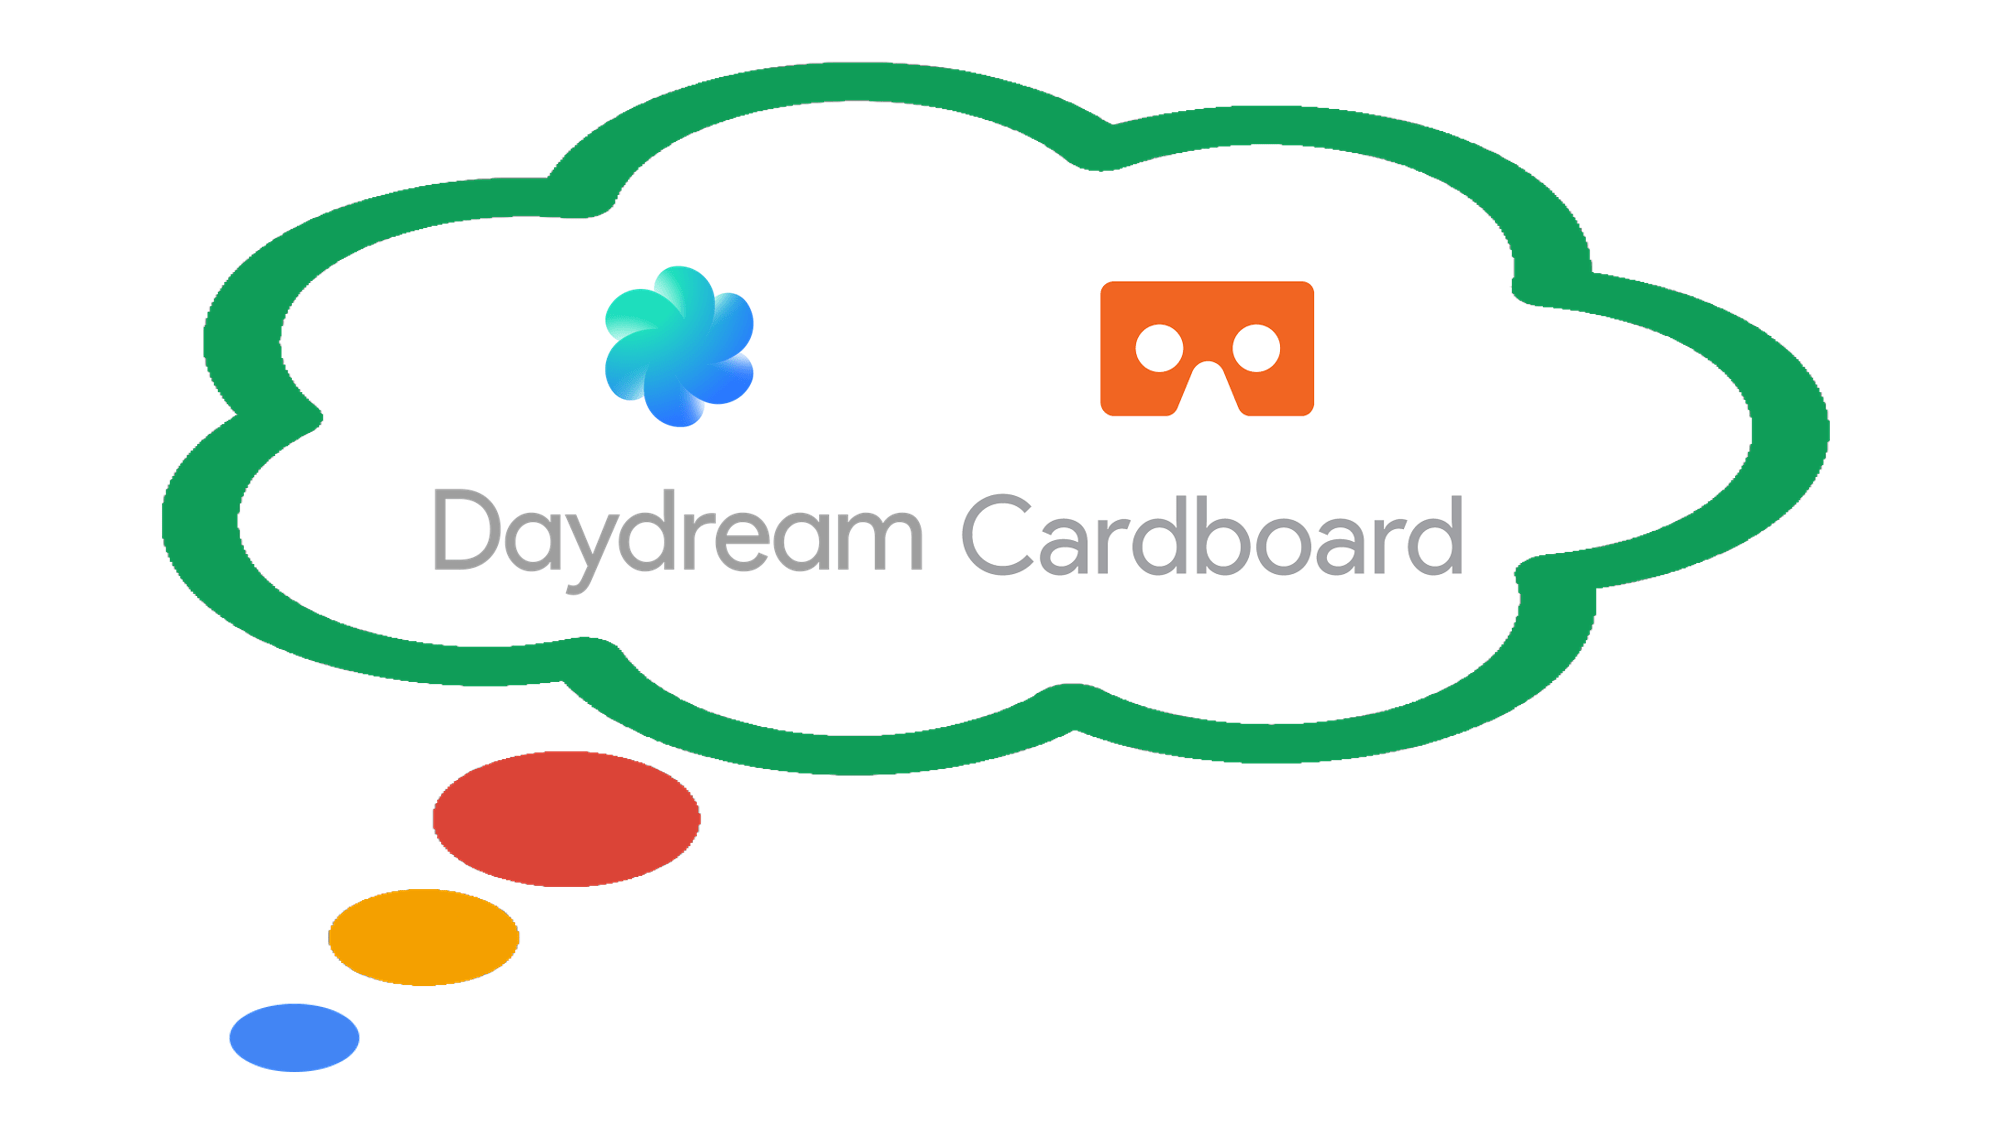 Google's Daydream VR is dead, support ending with Android 11